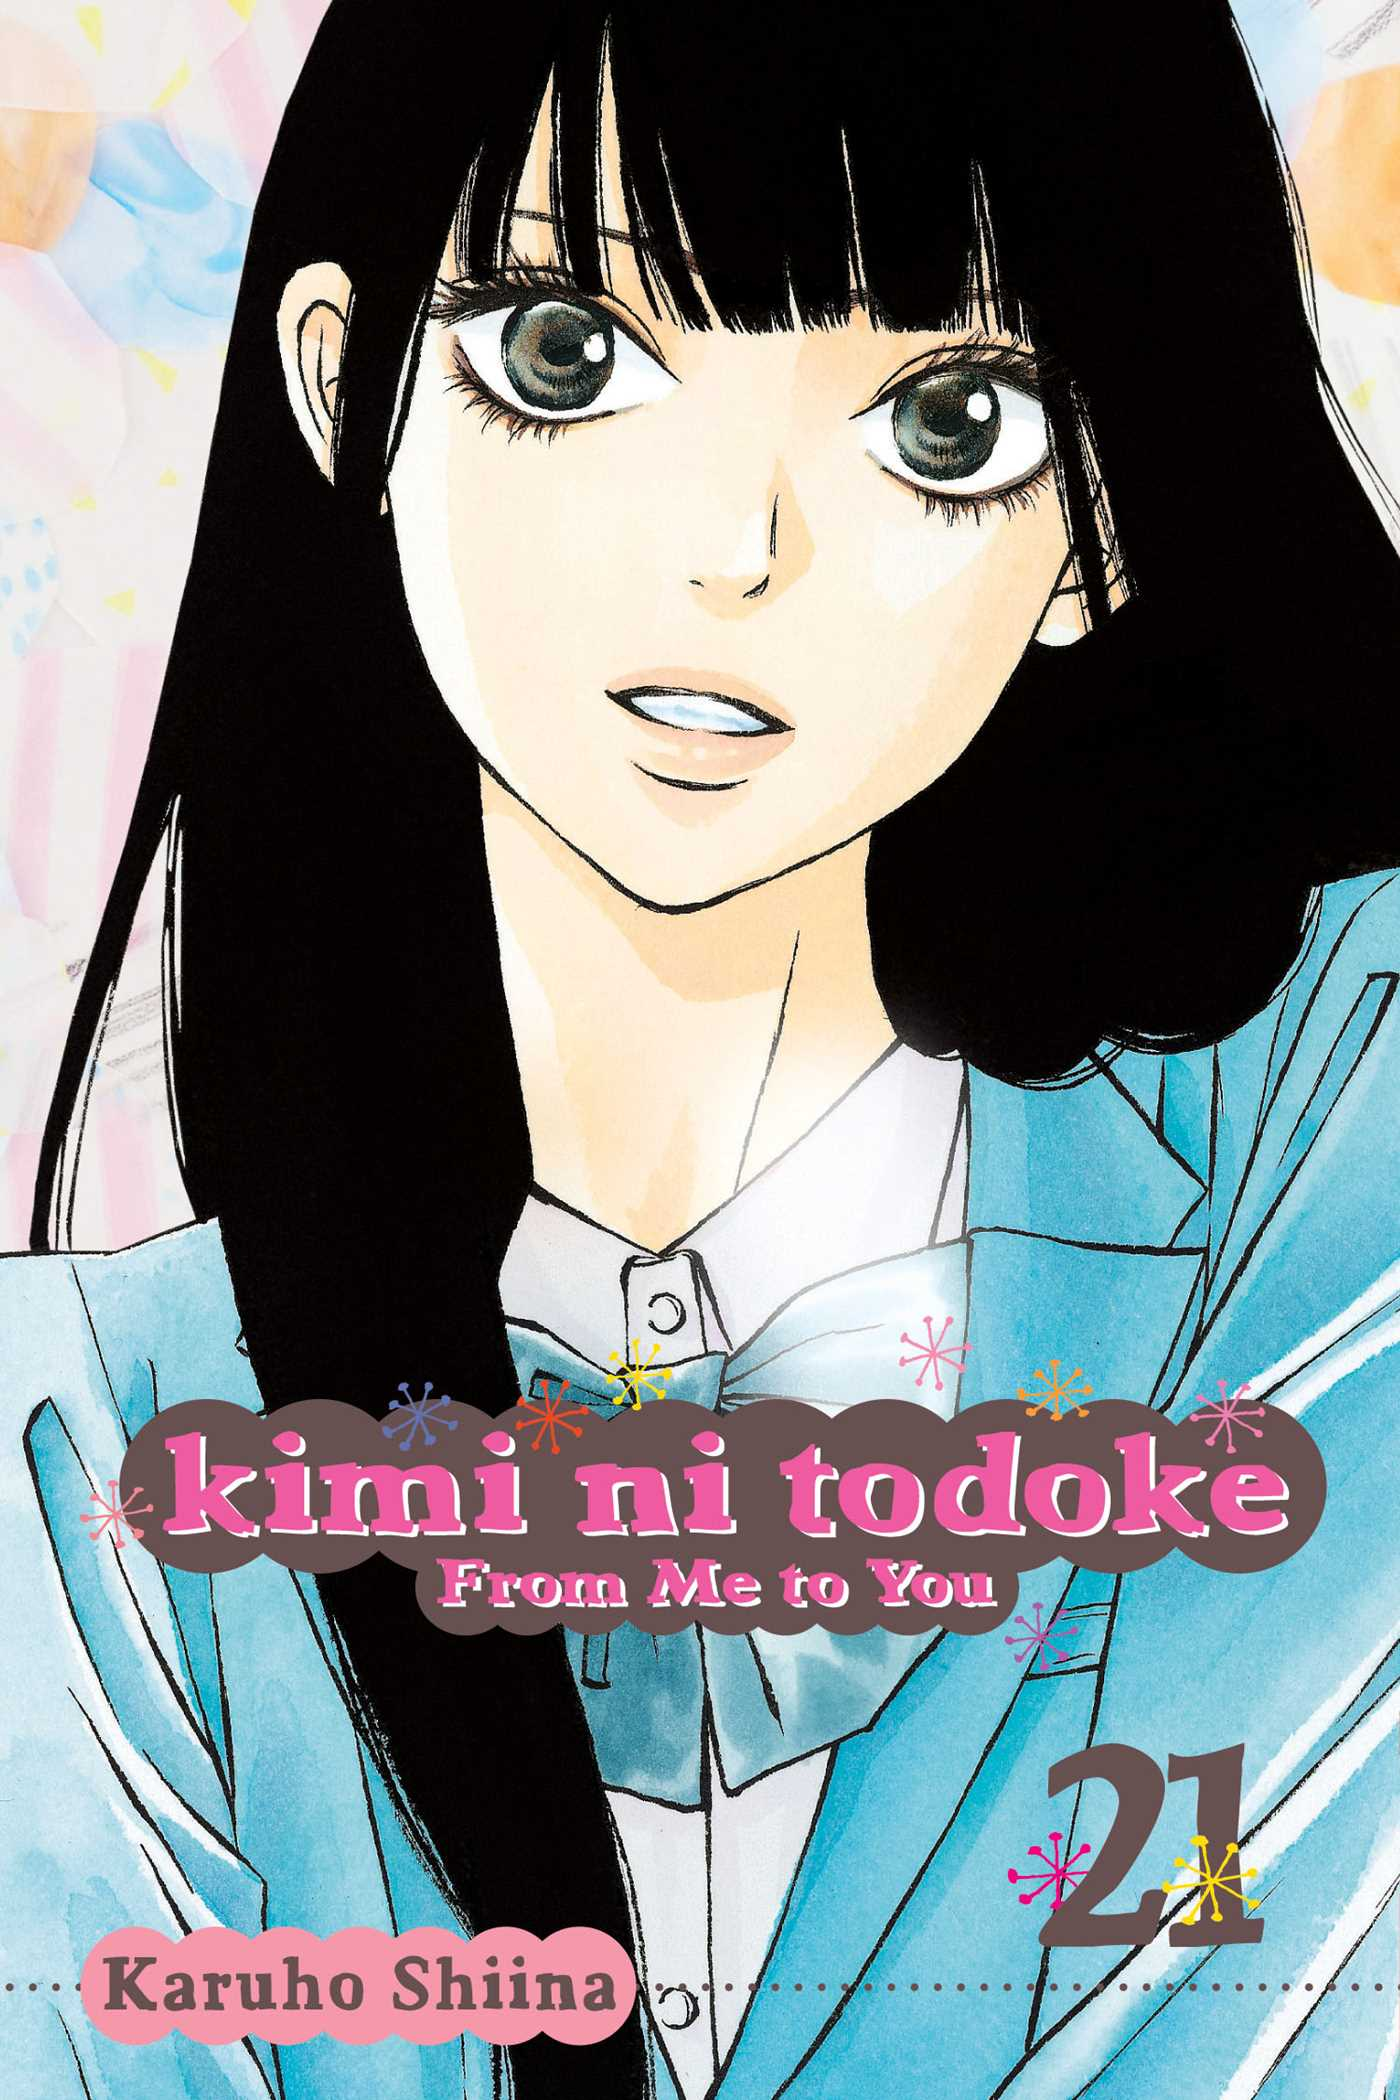 Book Cover Image Jpg Kimi Ni Todoke From Me To You Vol 21